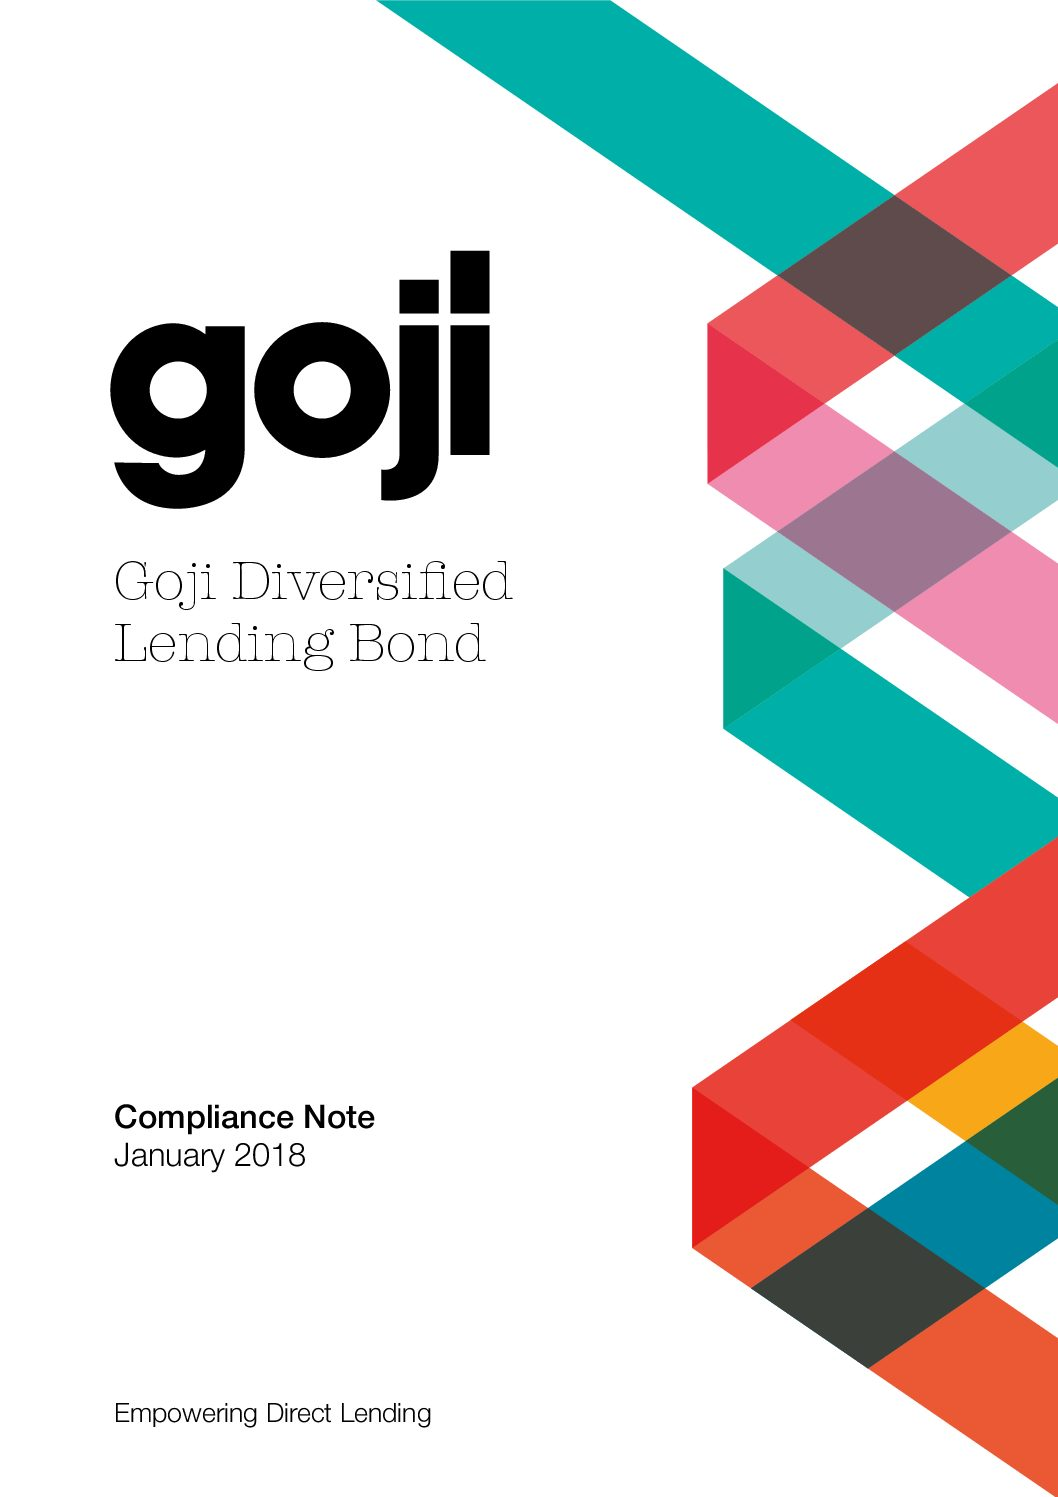 Diversified Lending Bond Compliance Note-Goji Direct Lending Investment Experts